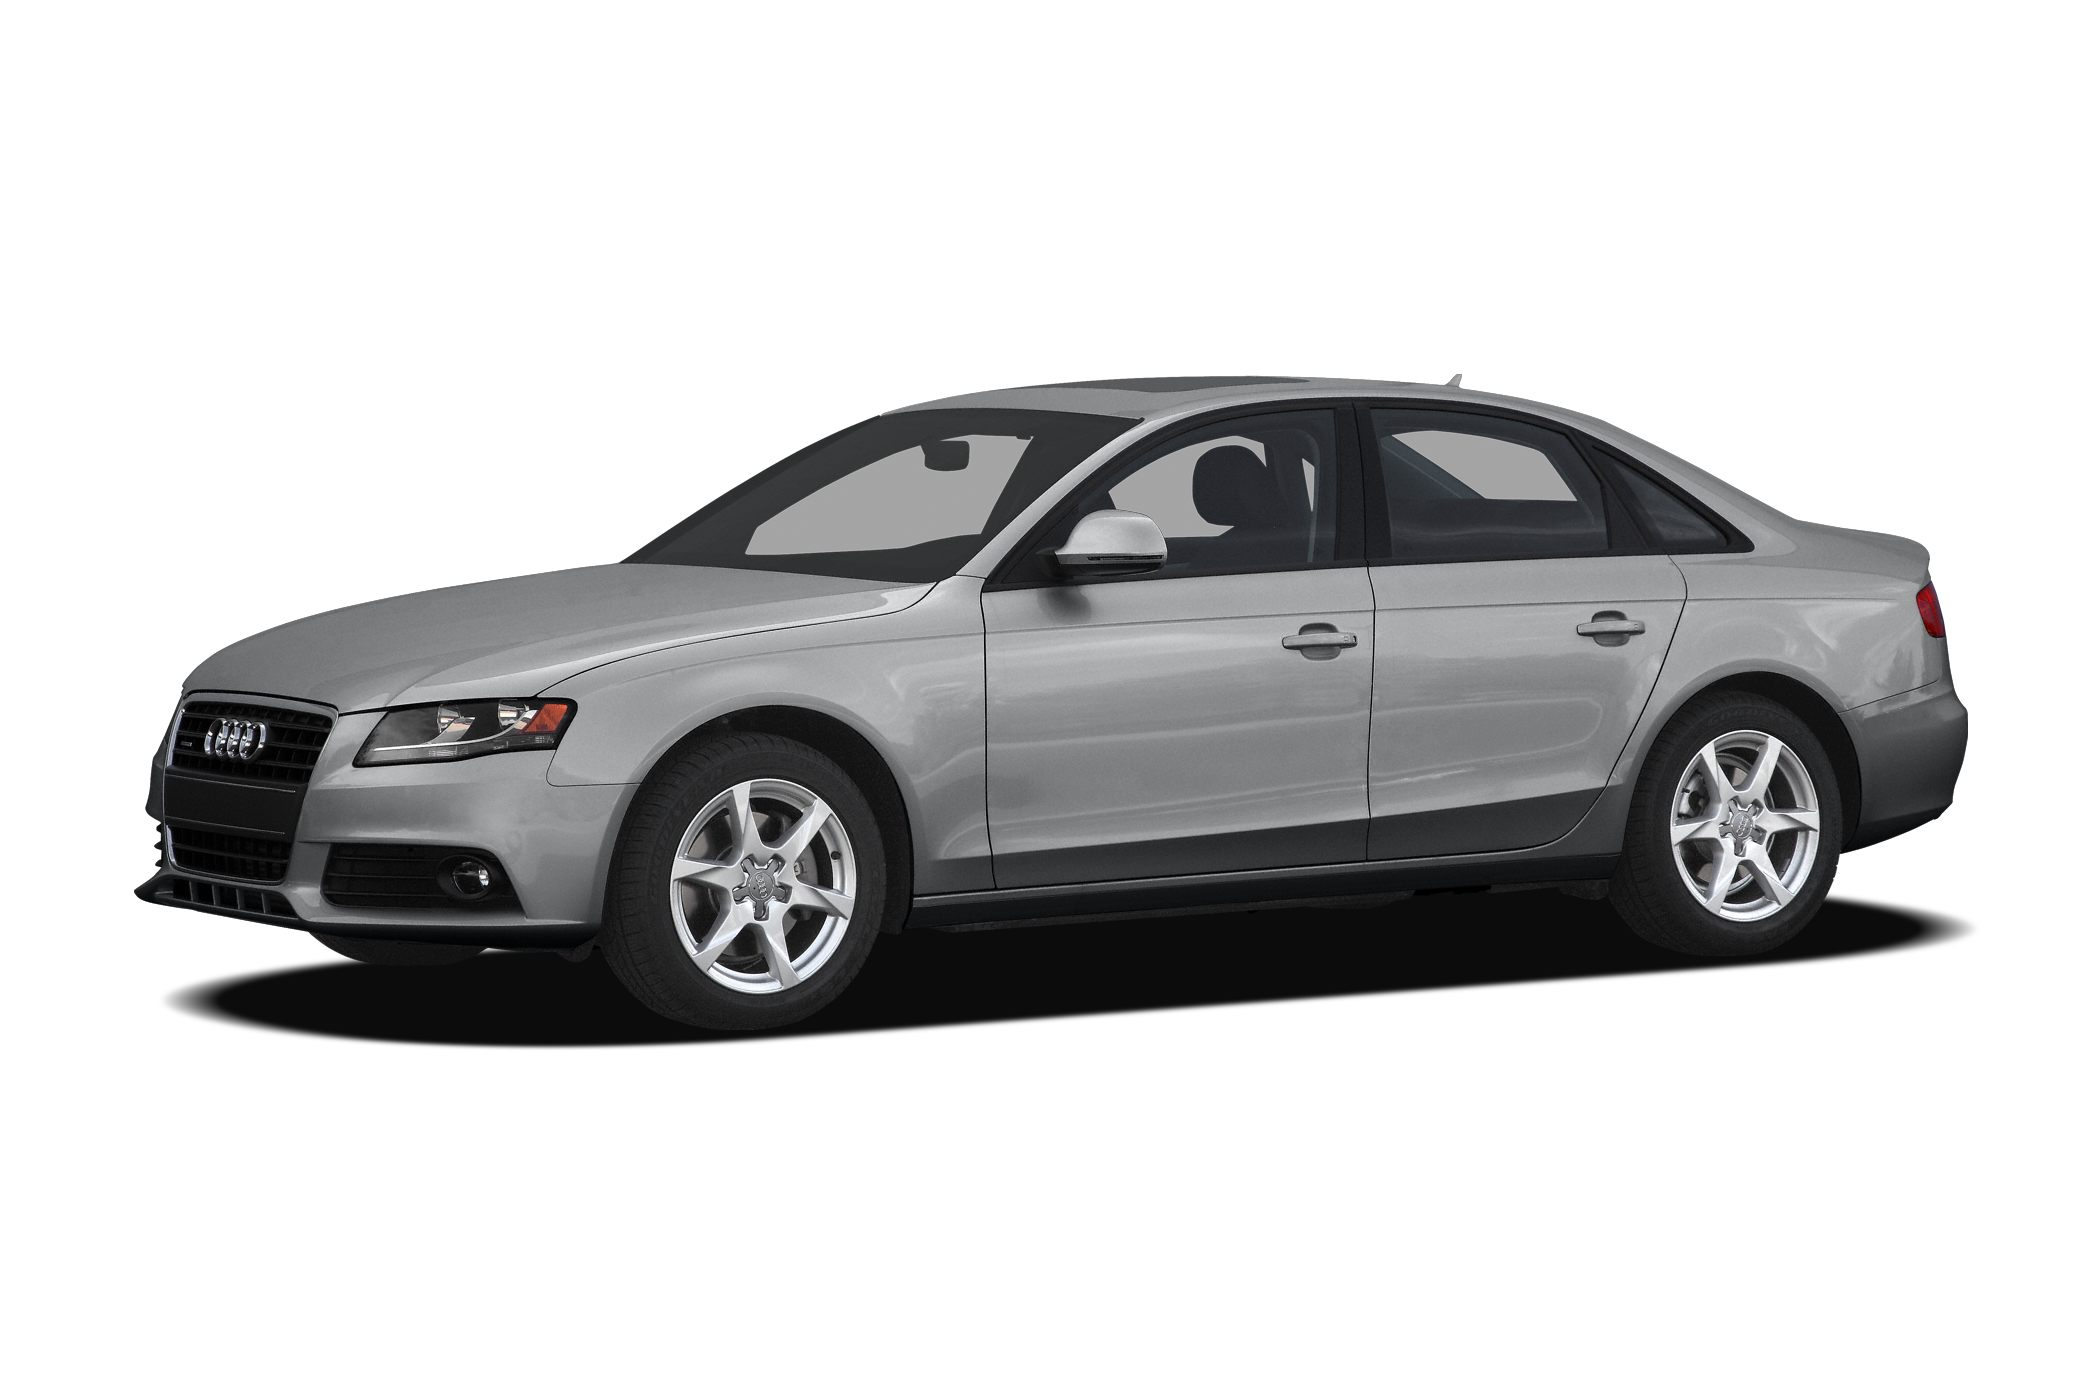 2009 Audi A4 2.0T Premium Quattro Sedan for sale in Cerritos for $17,934 with 63,051 miles.